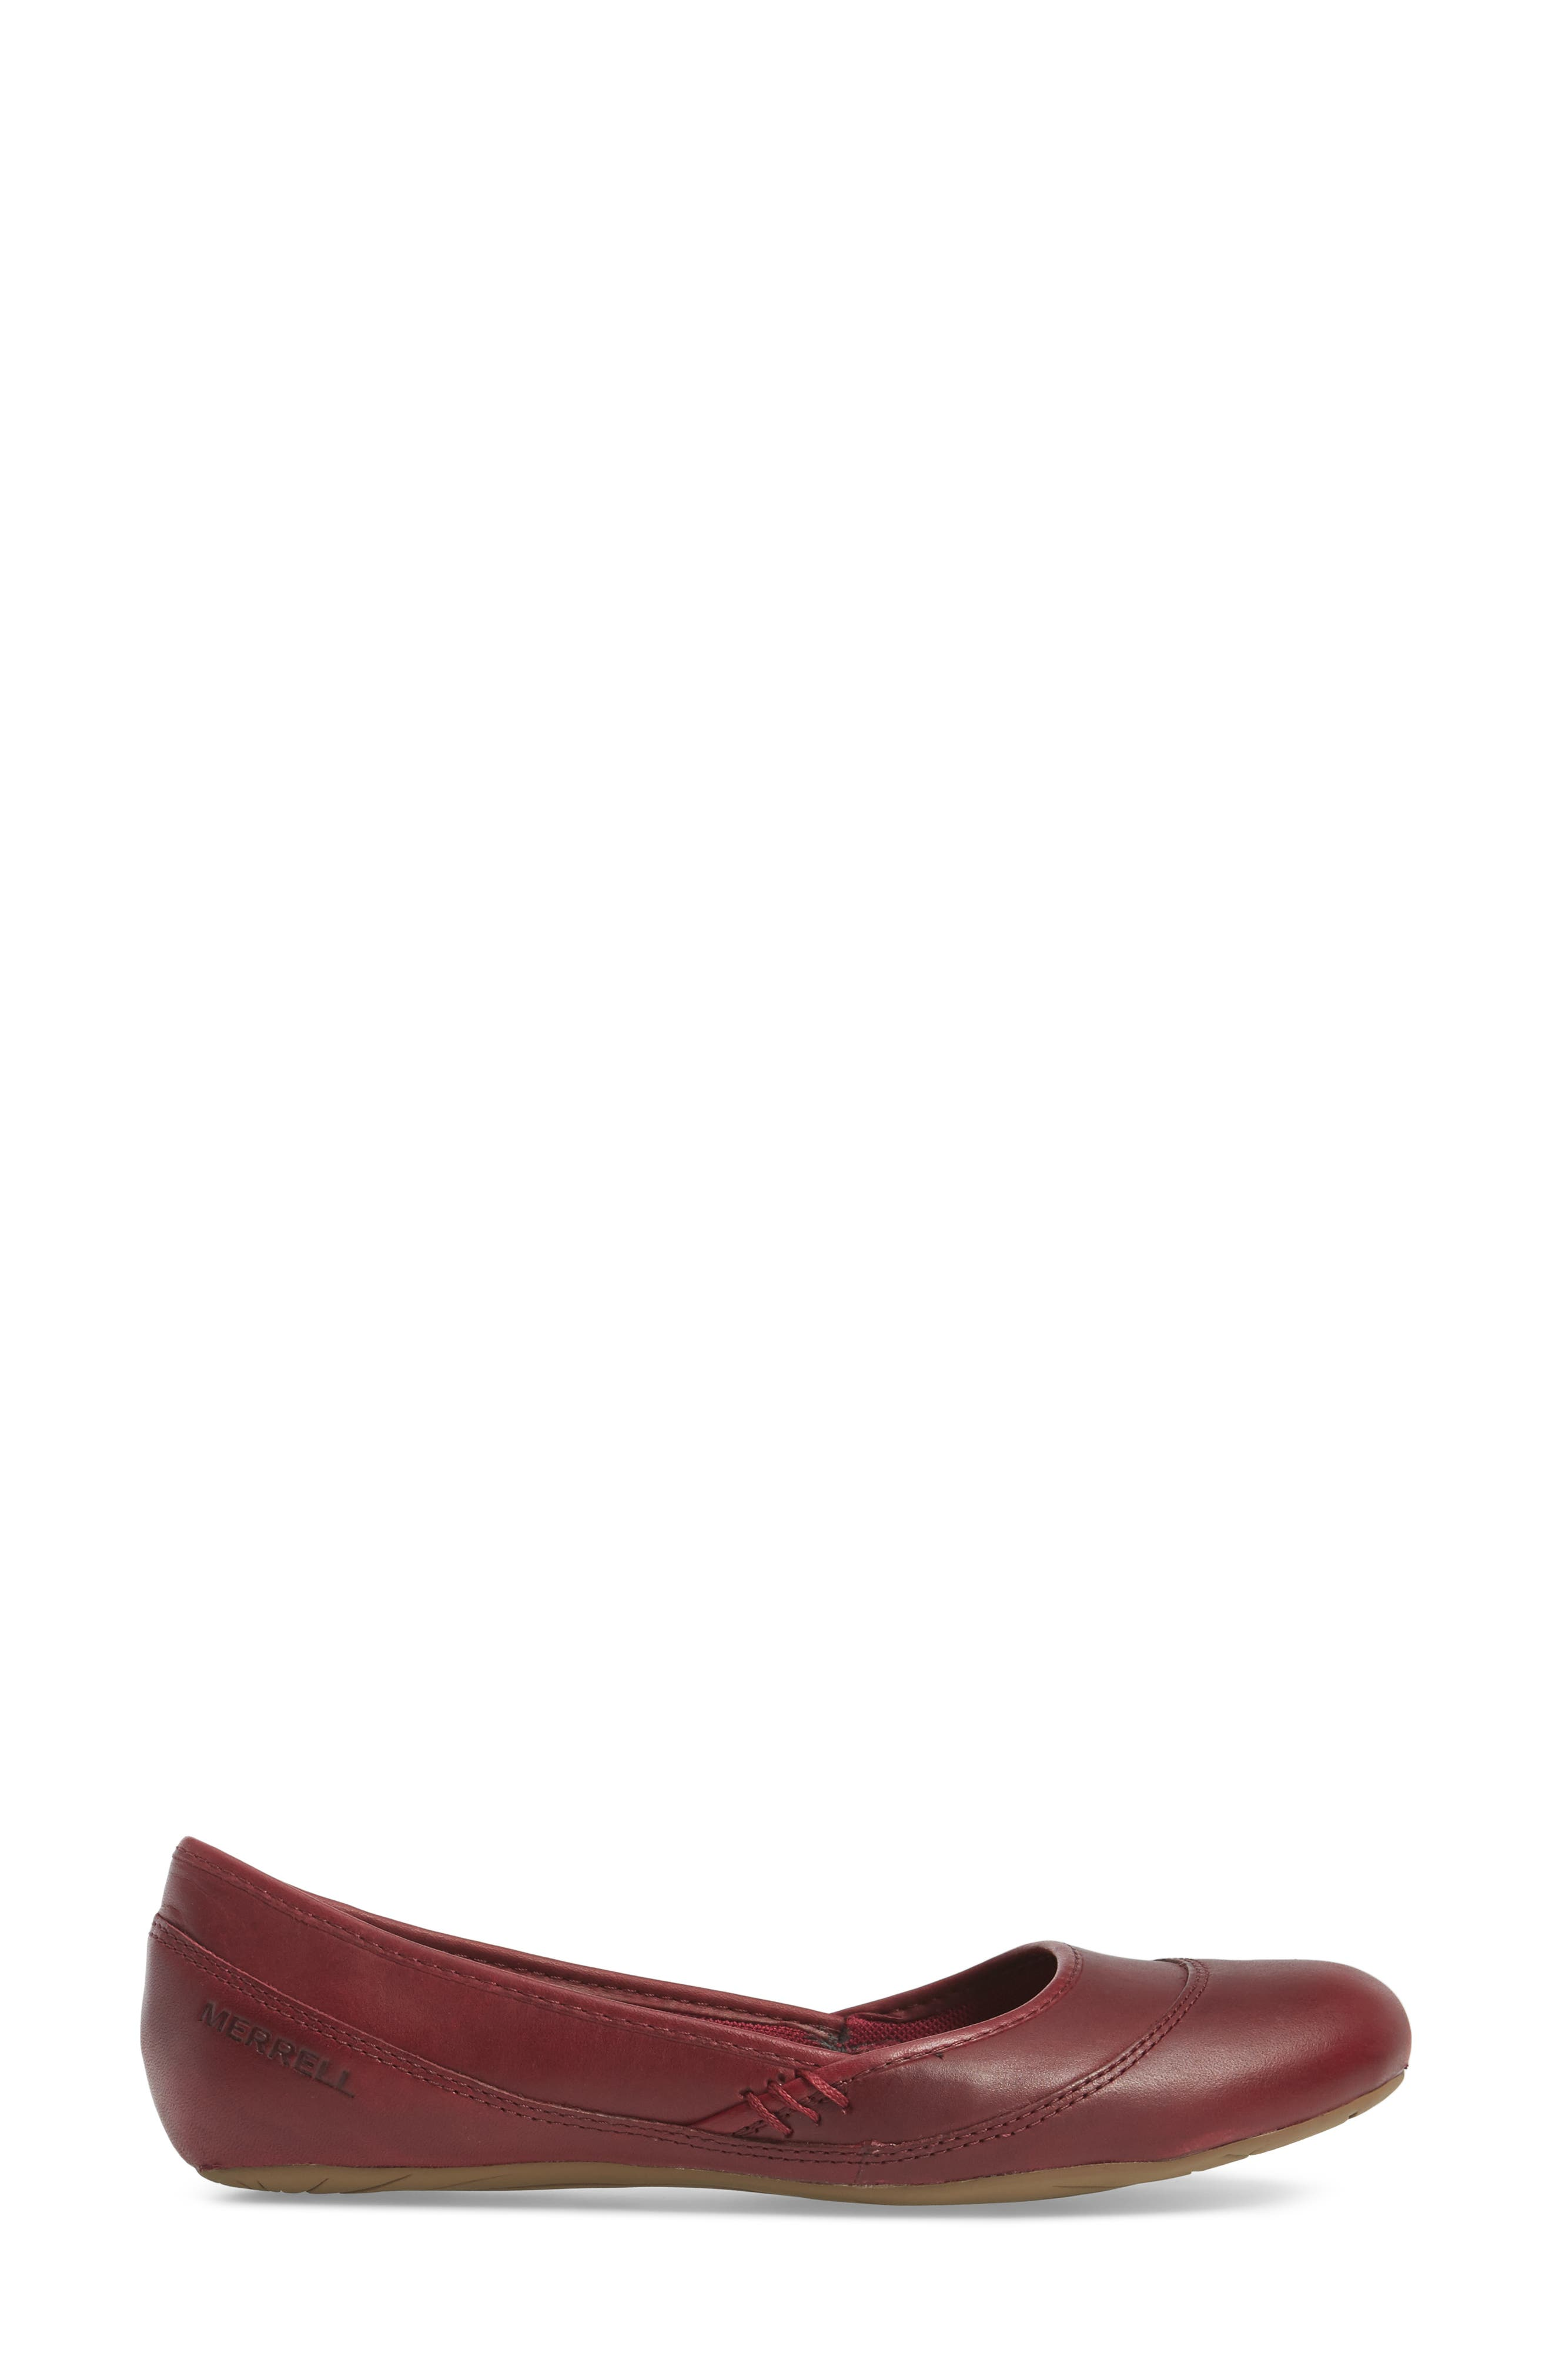 Ember Ballet Flat,                             Alternate thumbnail 3, color,                             Beet Red Leather